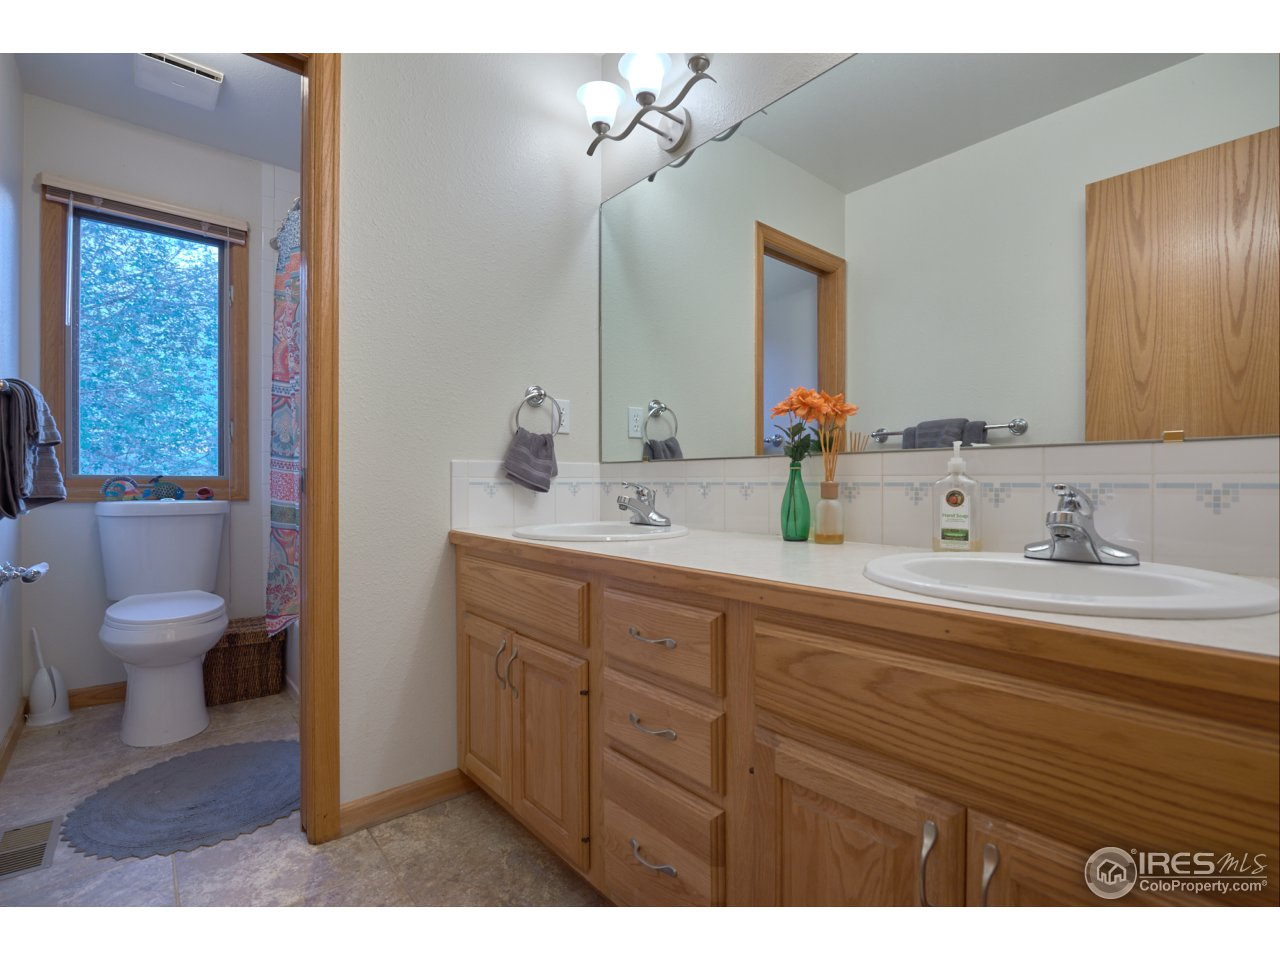 Full guest bath w/ dual sinks- Upper level